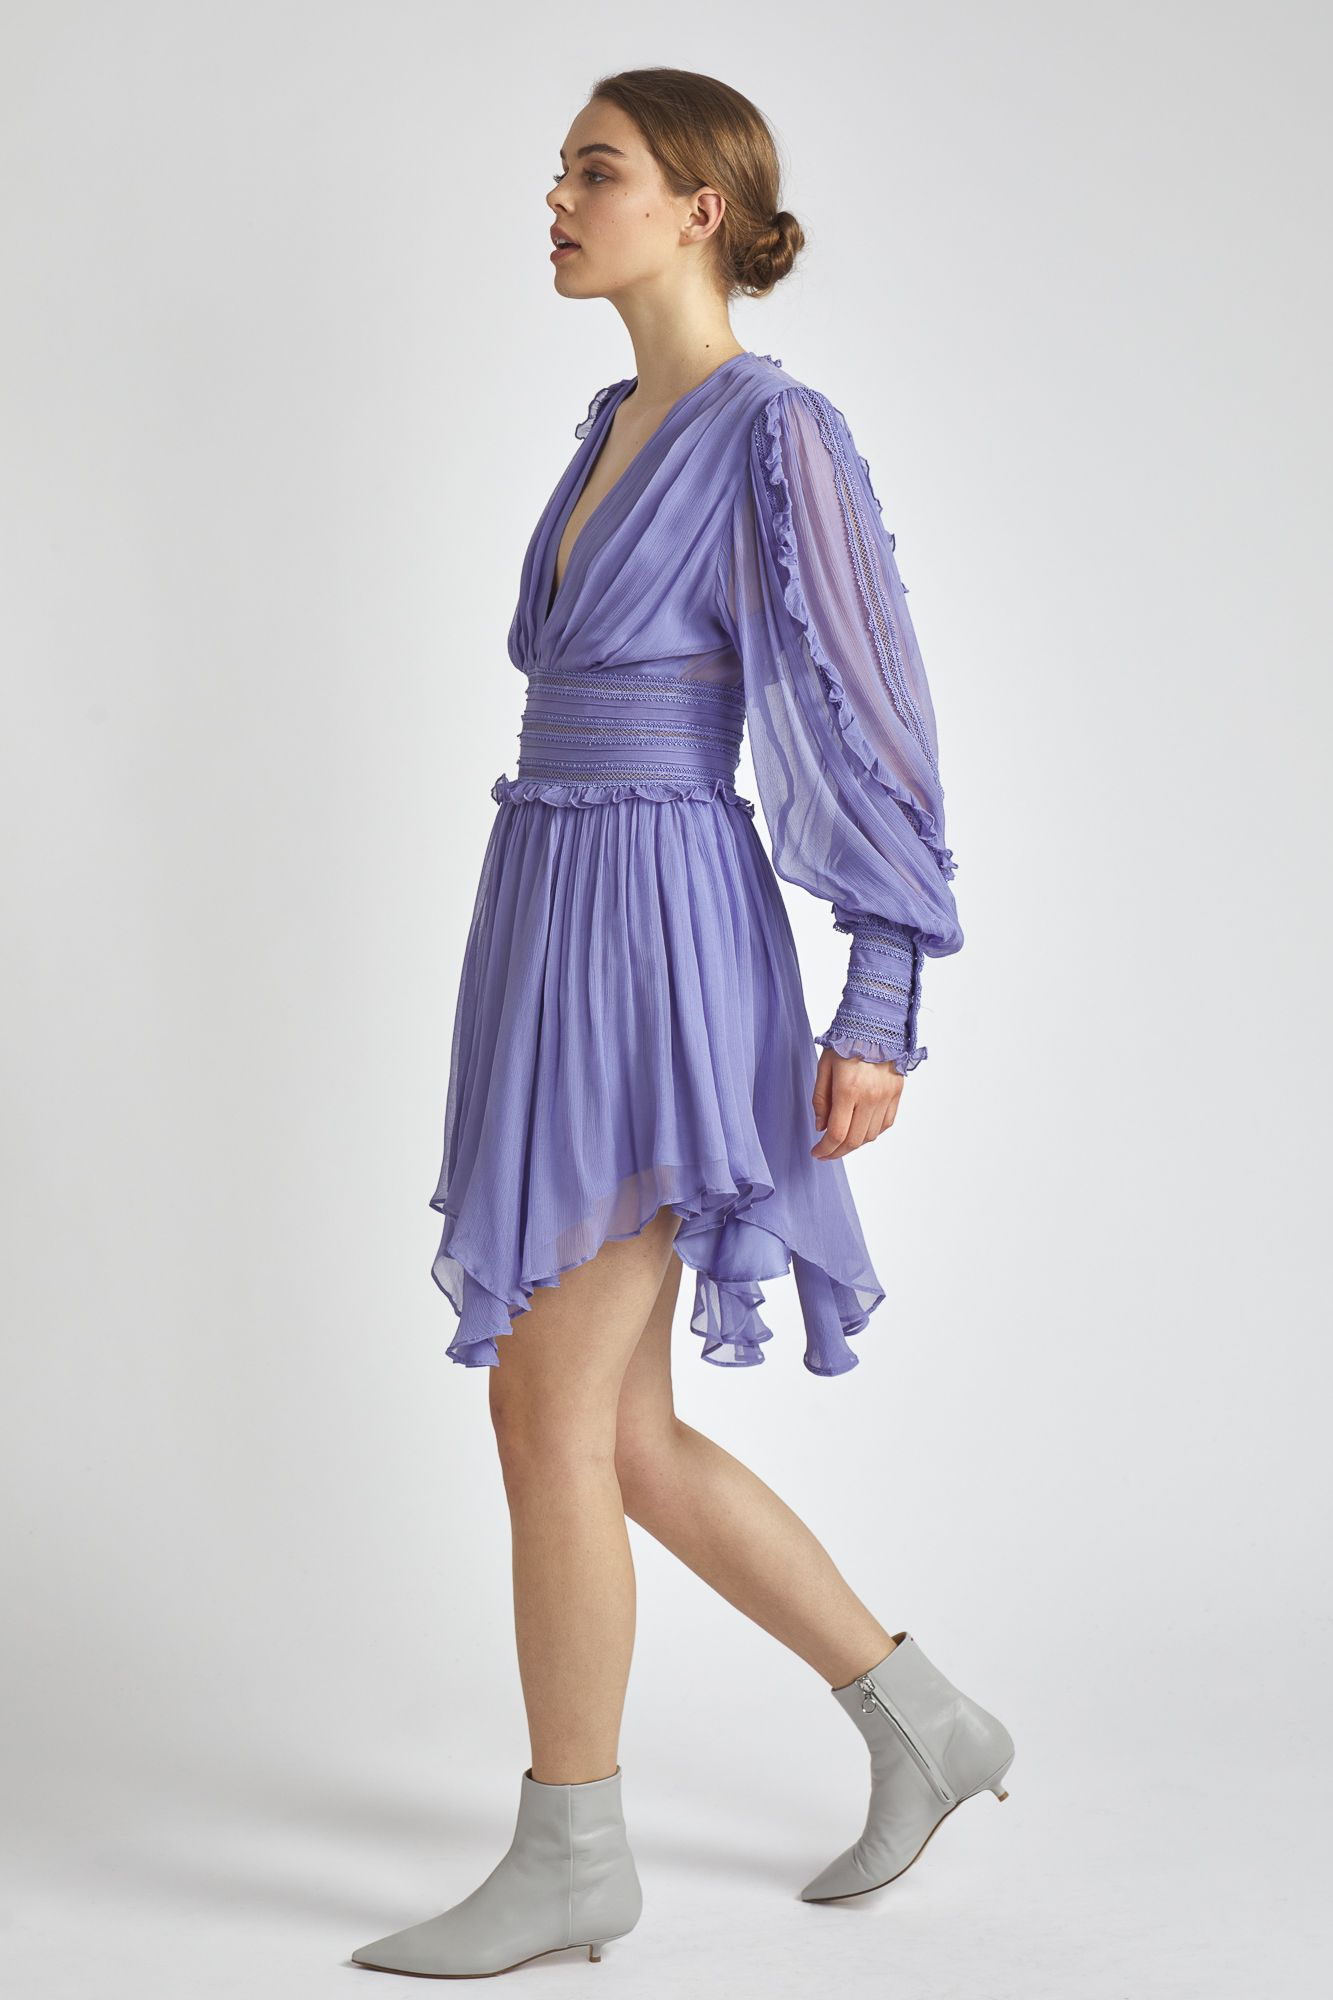 Eve dress, Magali Pascal, Boho Kleid, Summer 2021